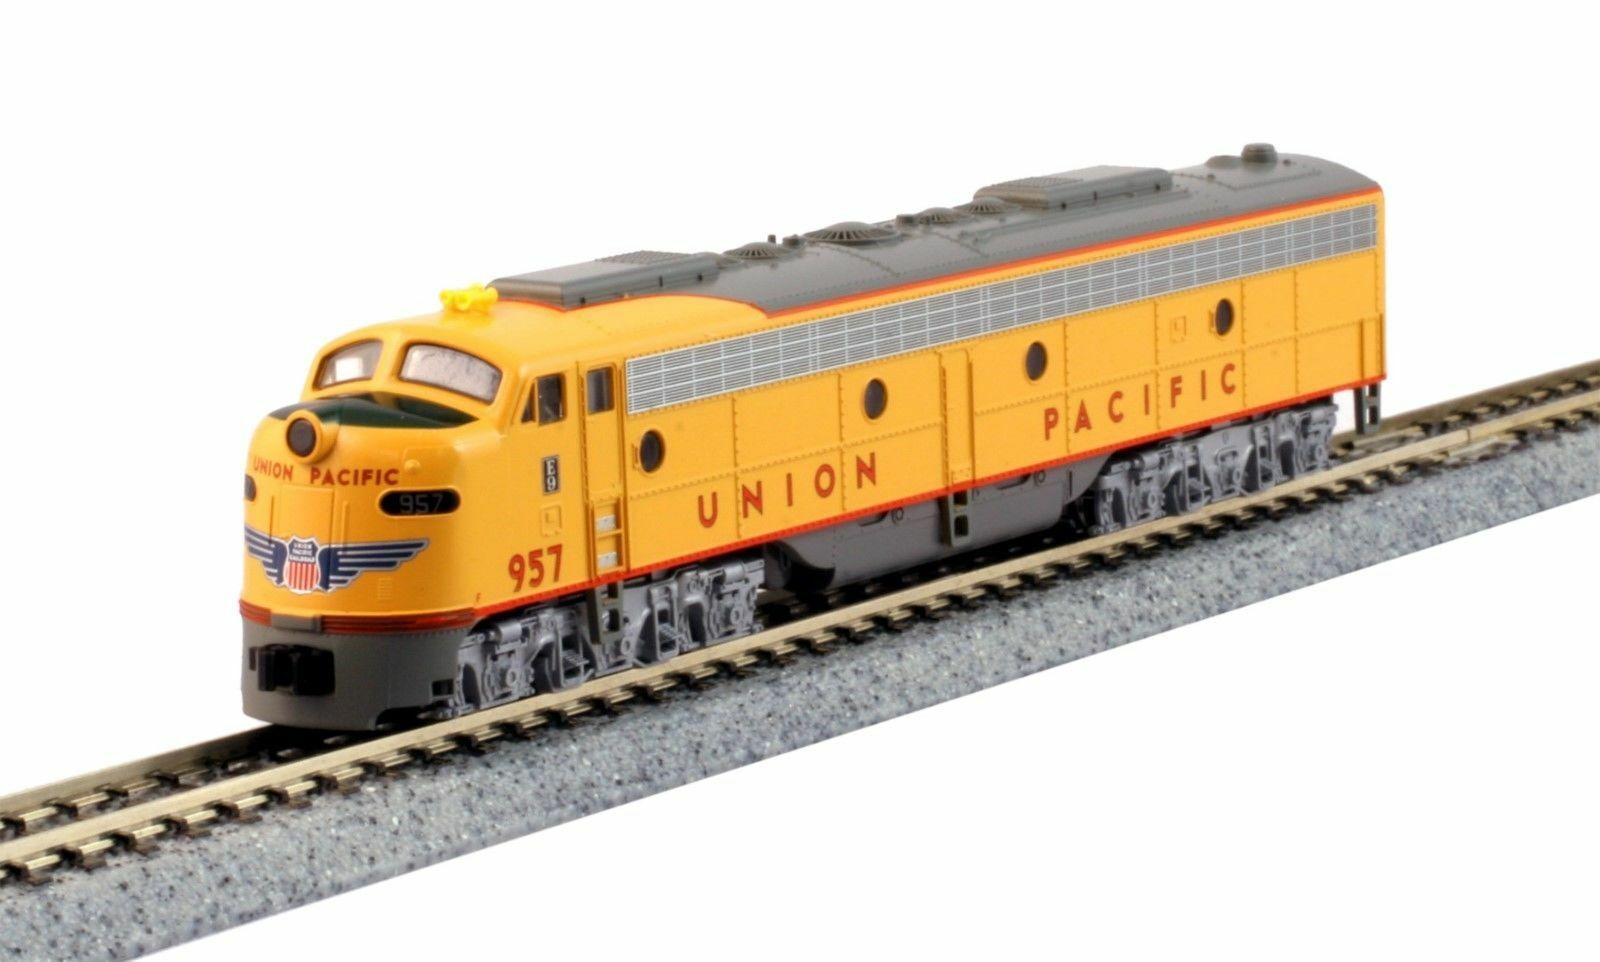 KATO 1765317DCC N  E9A Union Pacific City of Los Angeles  957 DCC 176-5317-DCC